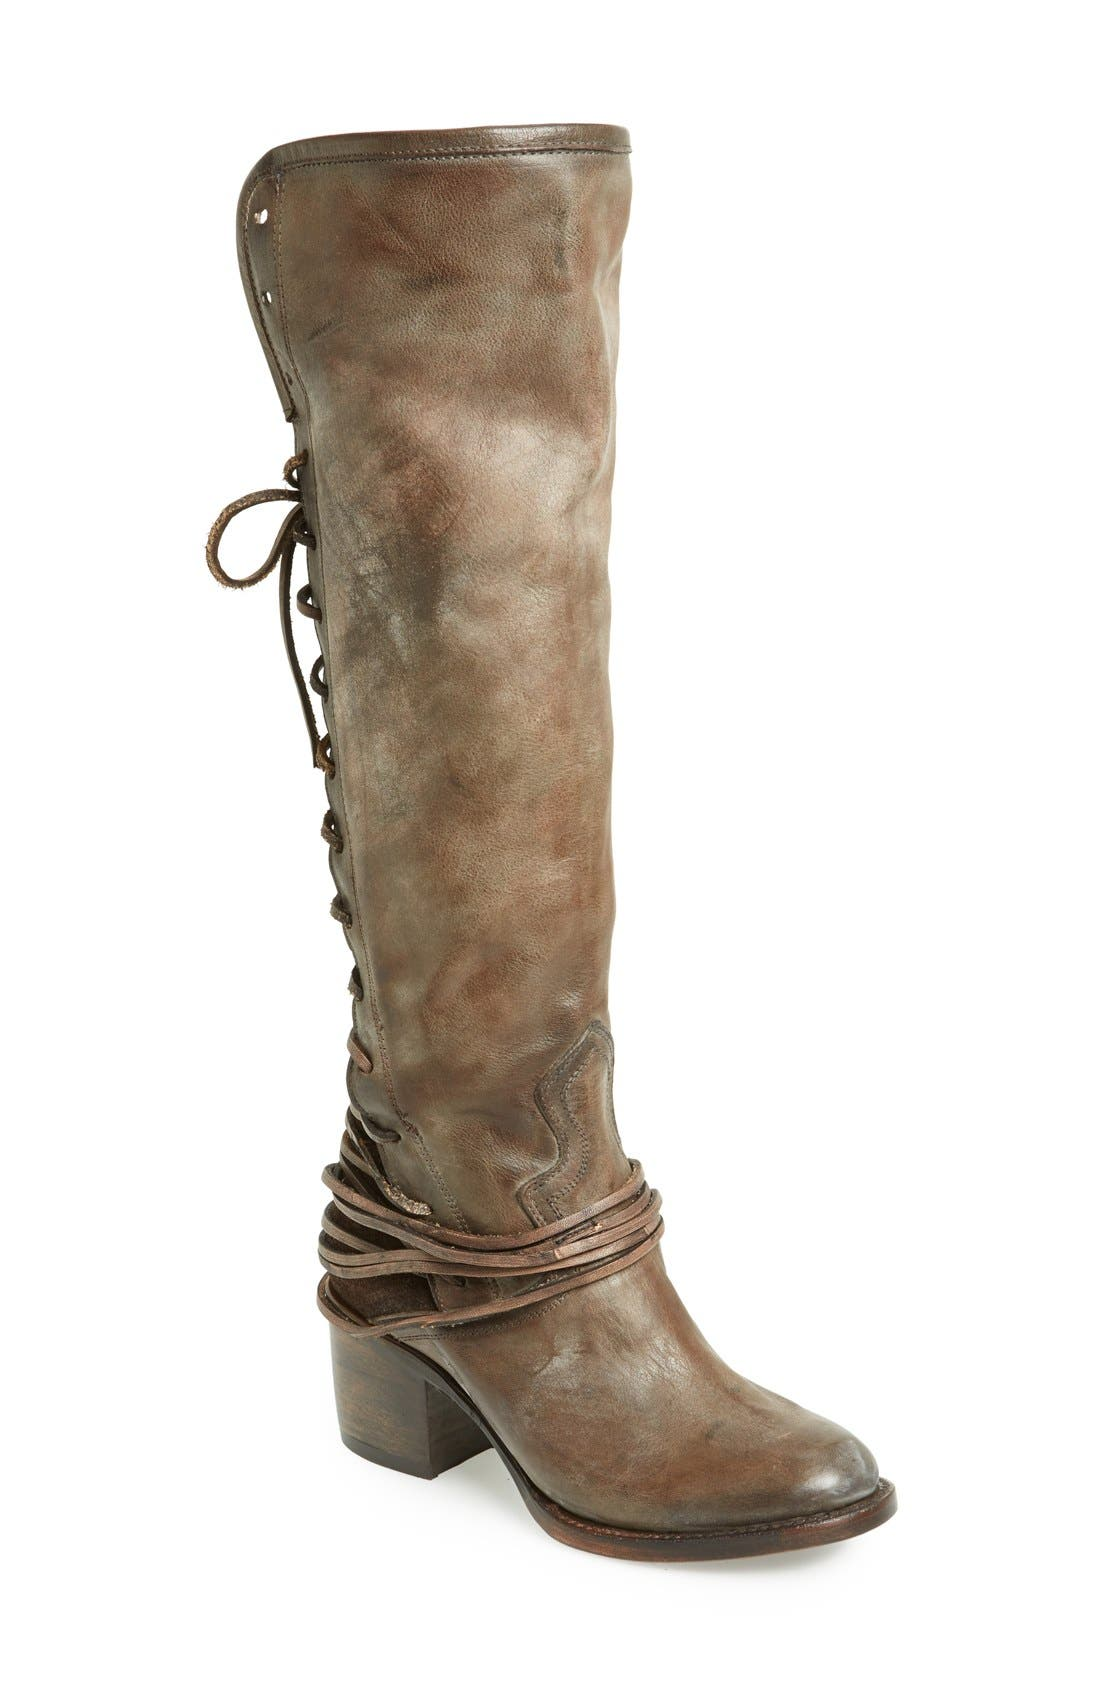 Alternate Image 1 Selected - Freebird by Steven 'Coal' Tall Leather Boot (Women)